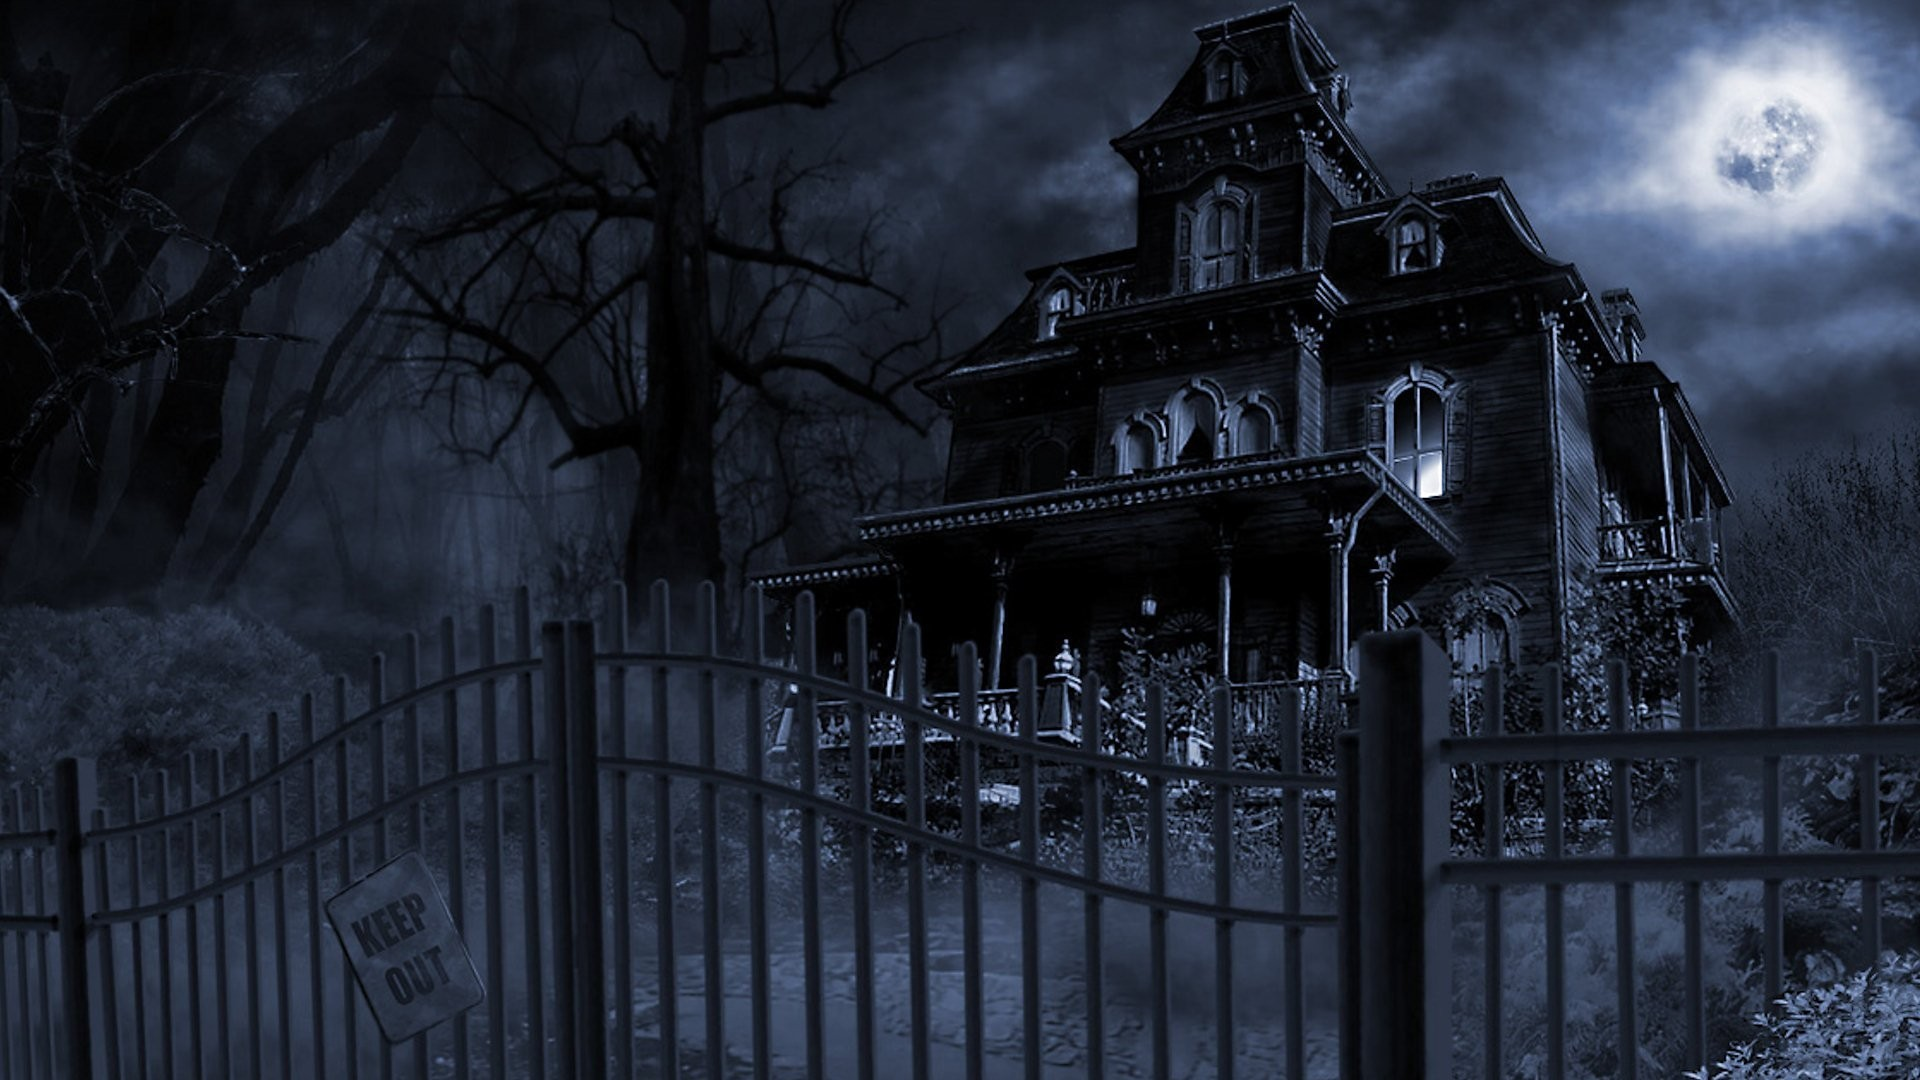 Spooky Wallpaper 1 Download Free Amazing High Resolution